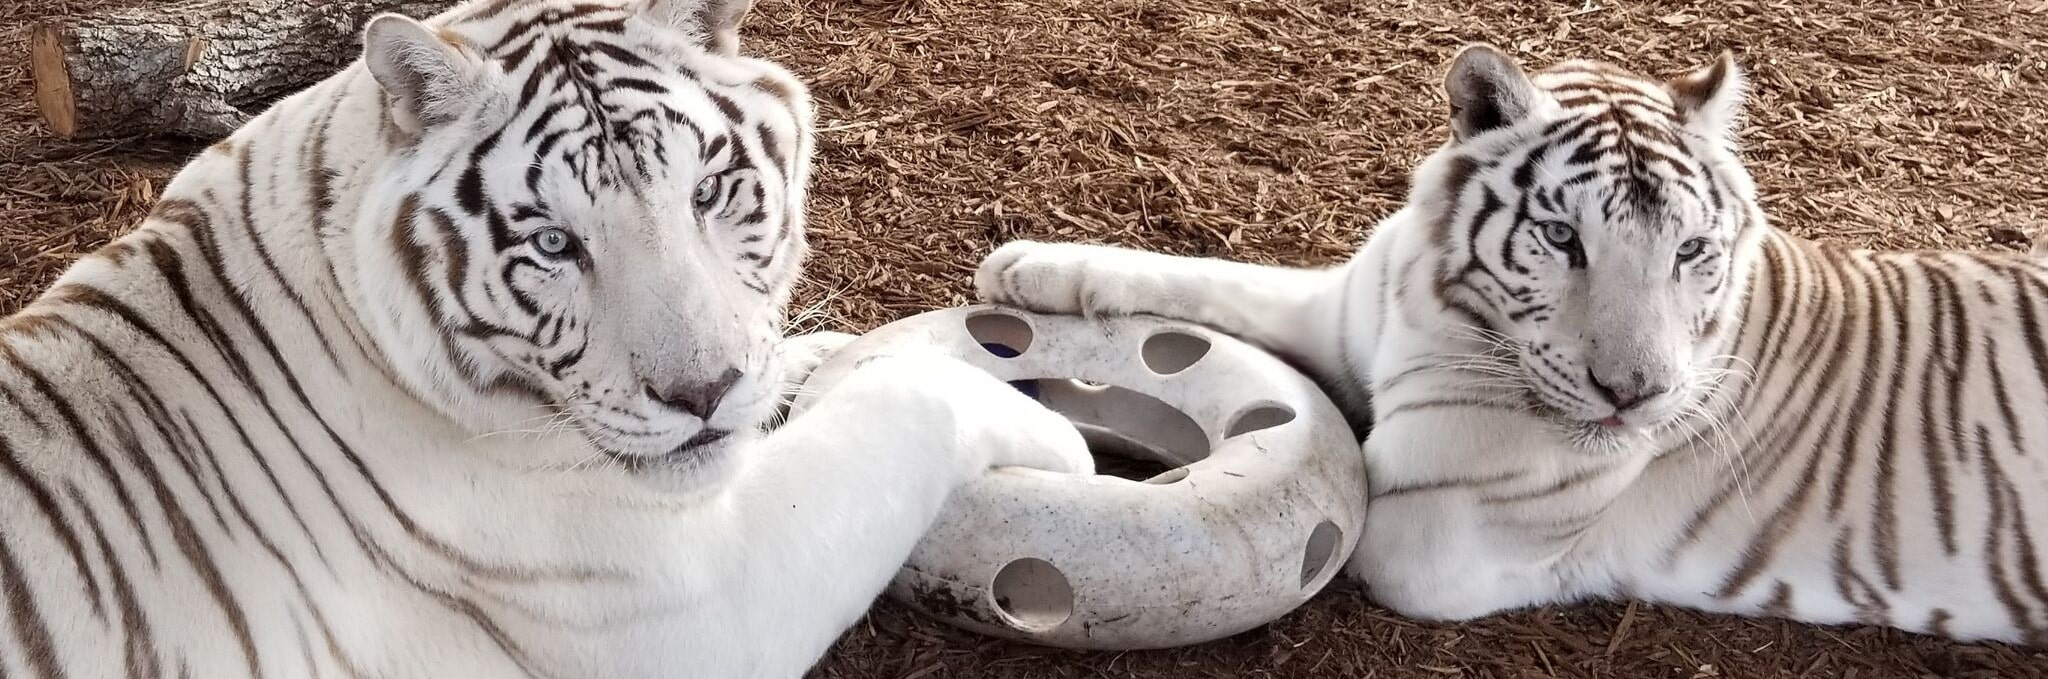 Two White Bengal Tigers - Central Florida Animal Reserve